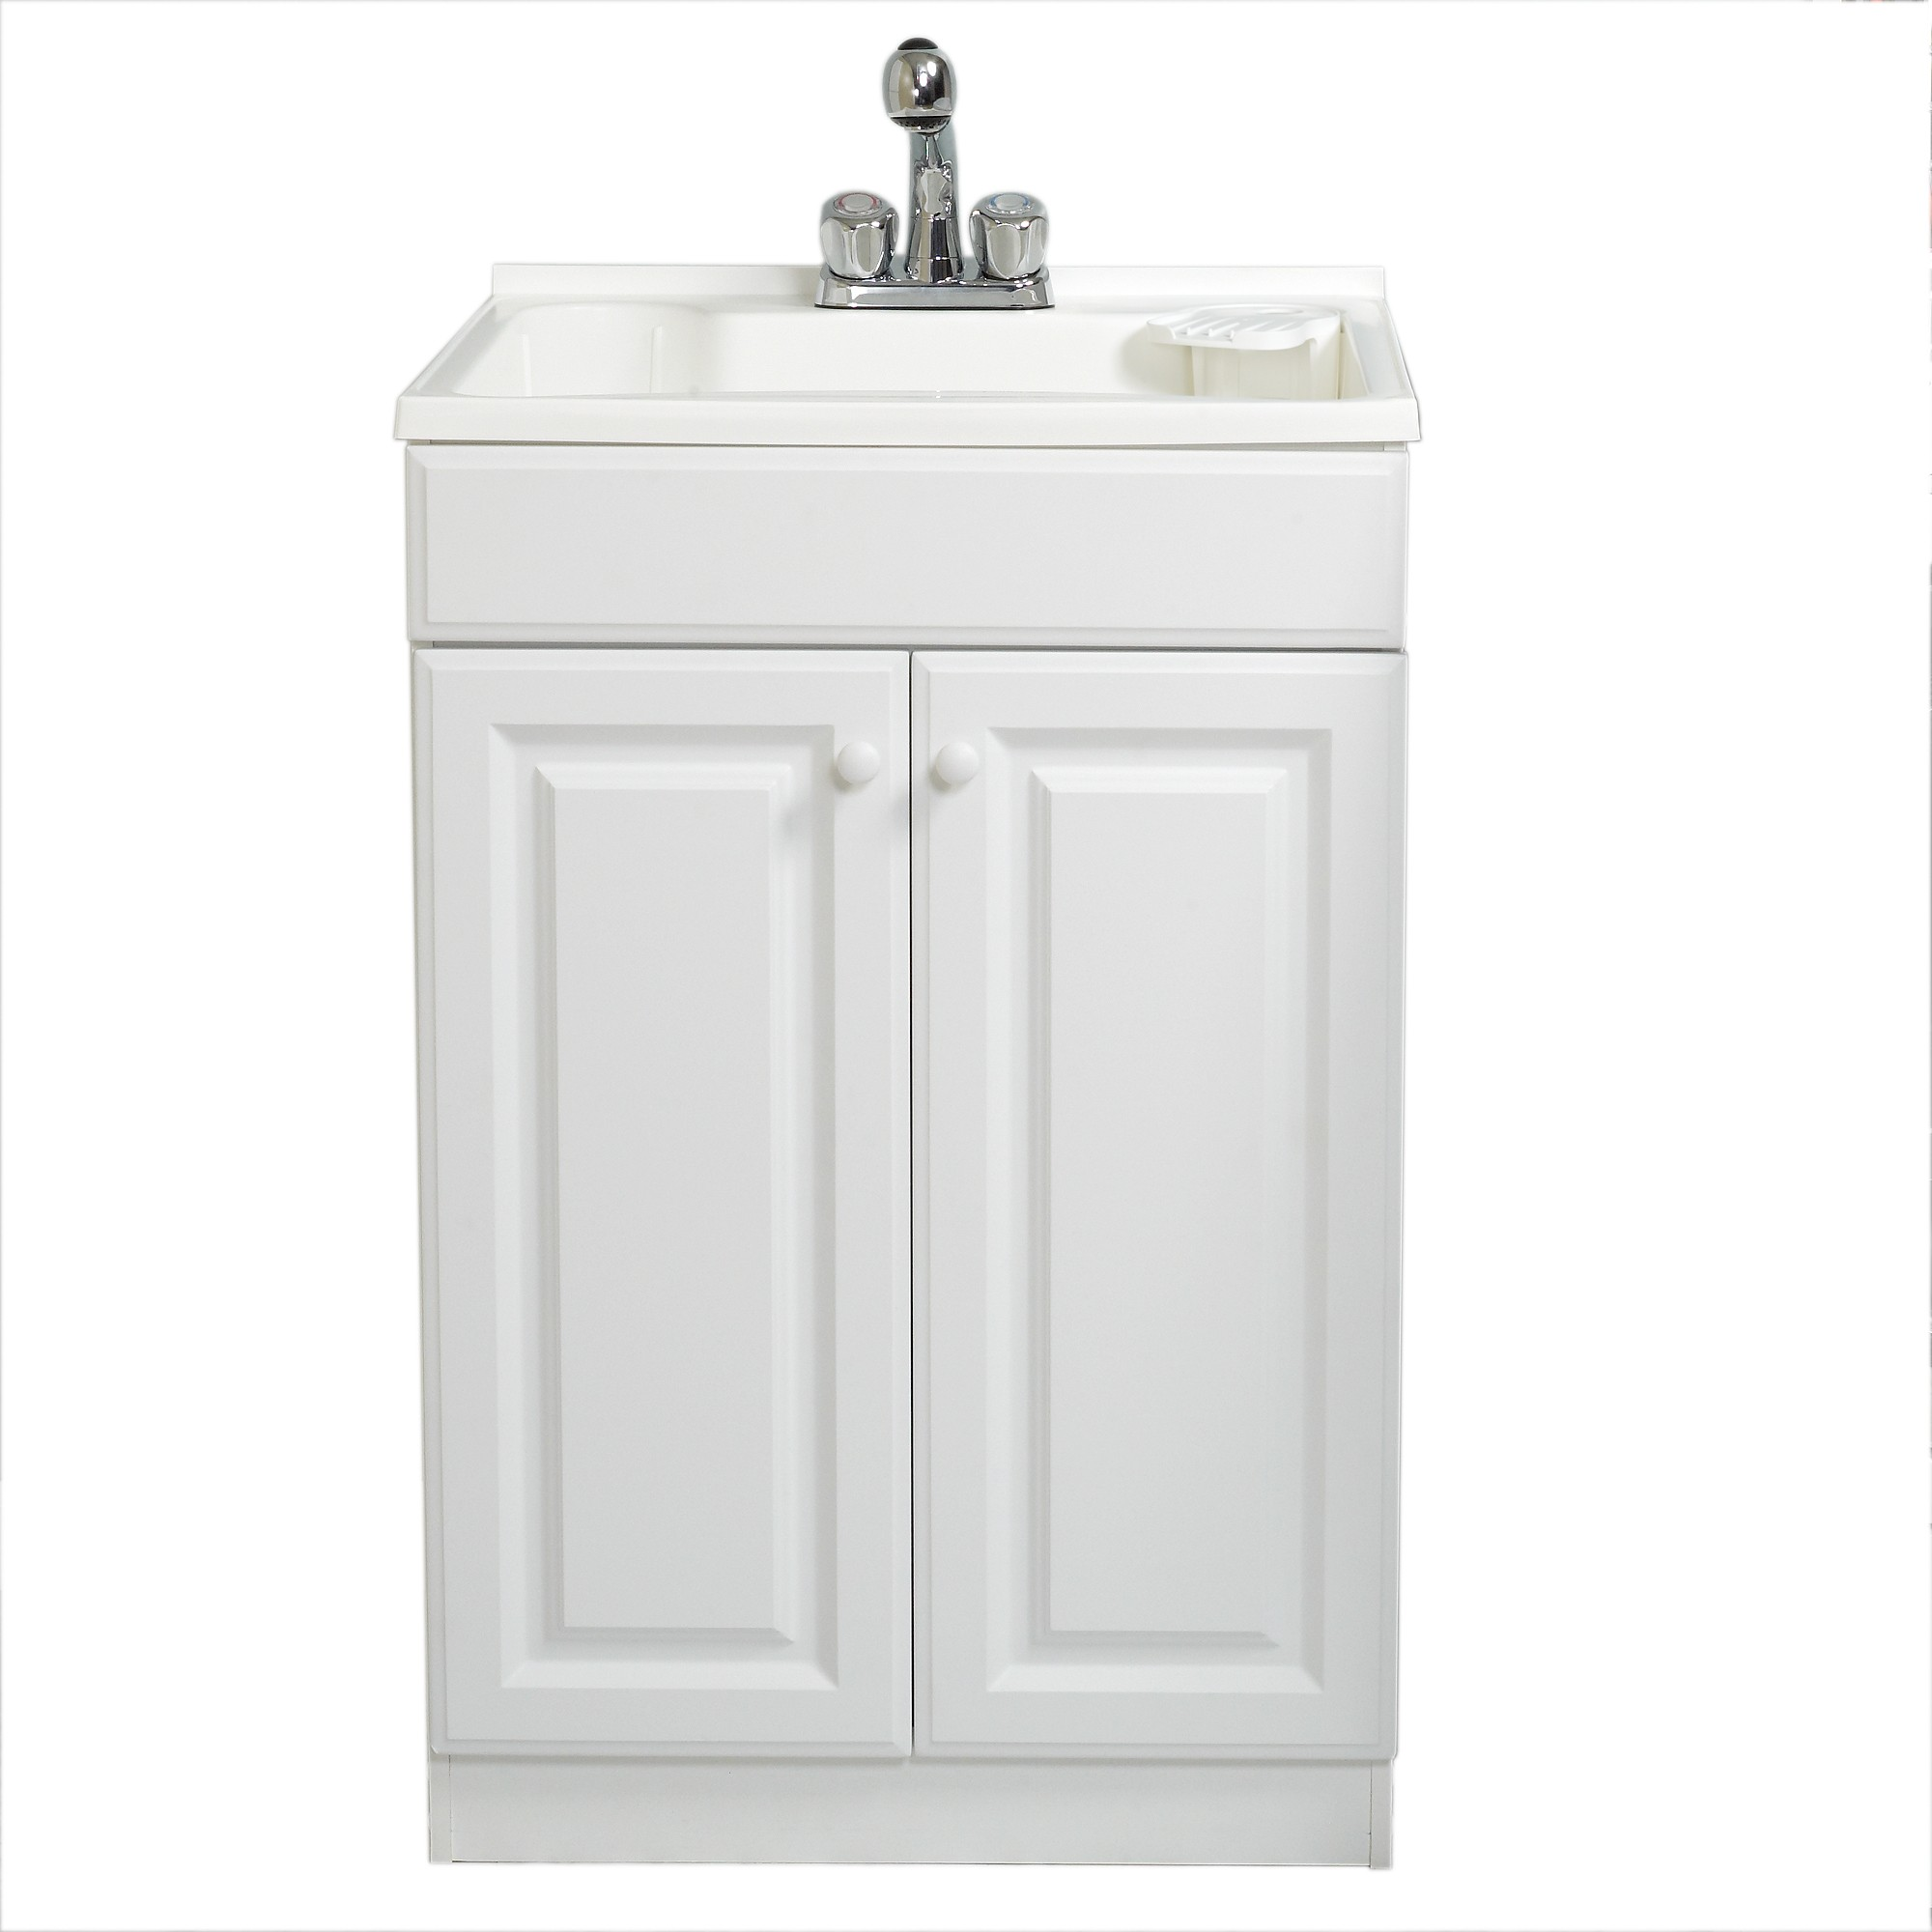 Images of laundry tubs style selections utility tub with cabinet aadtvvp